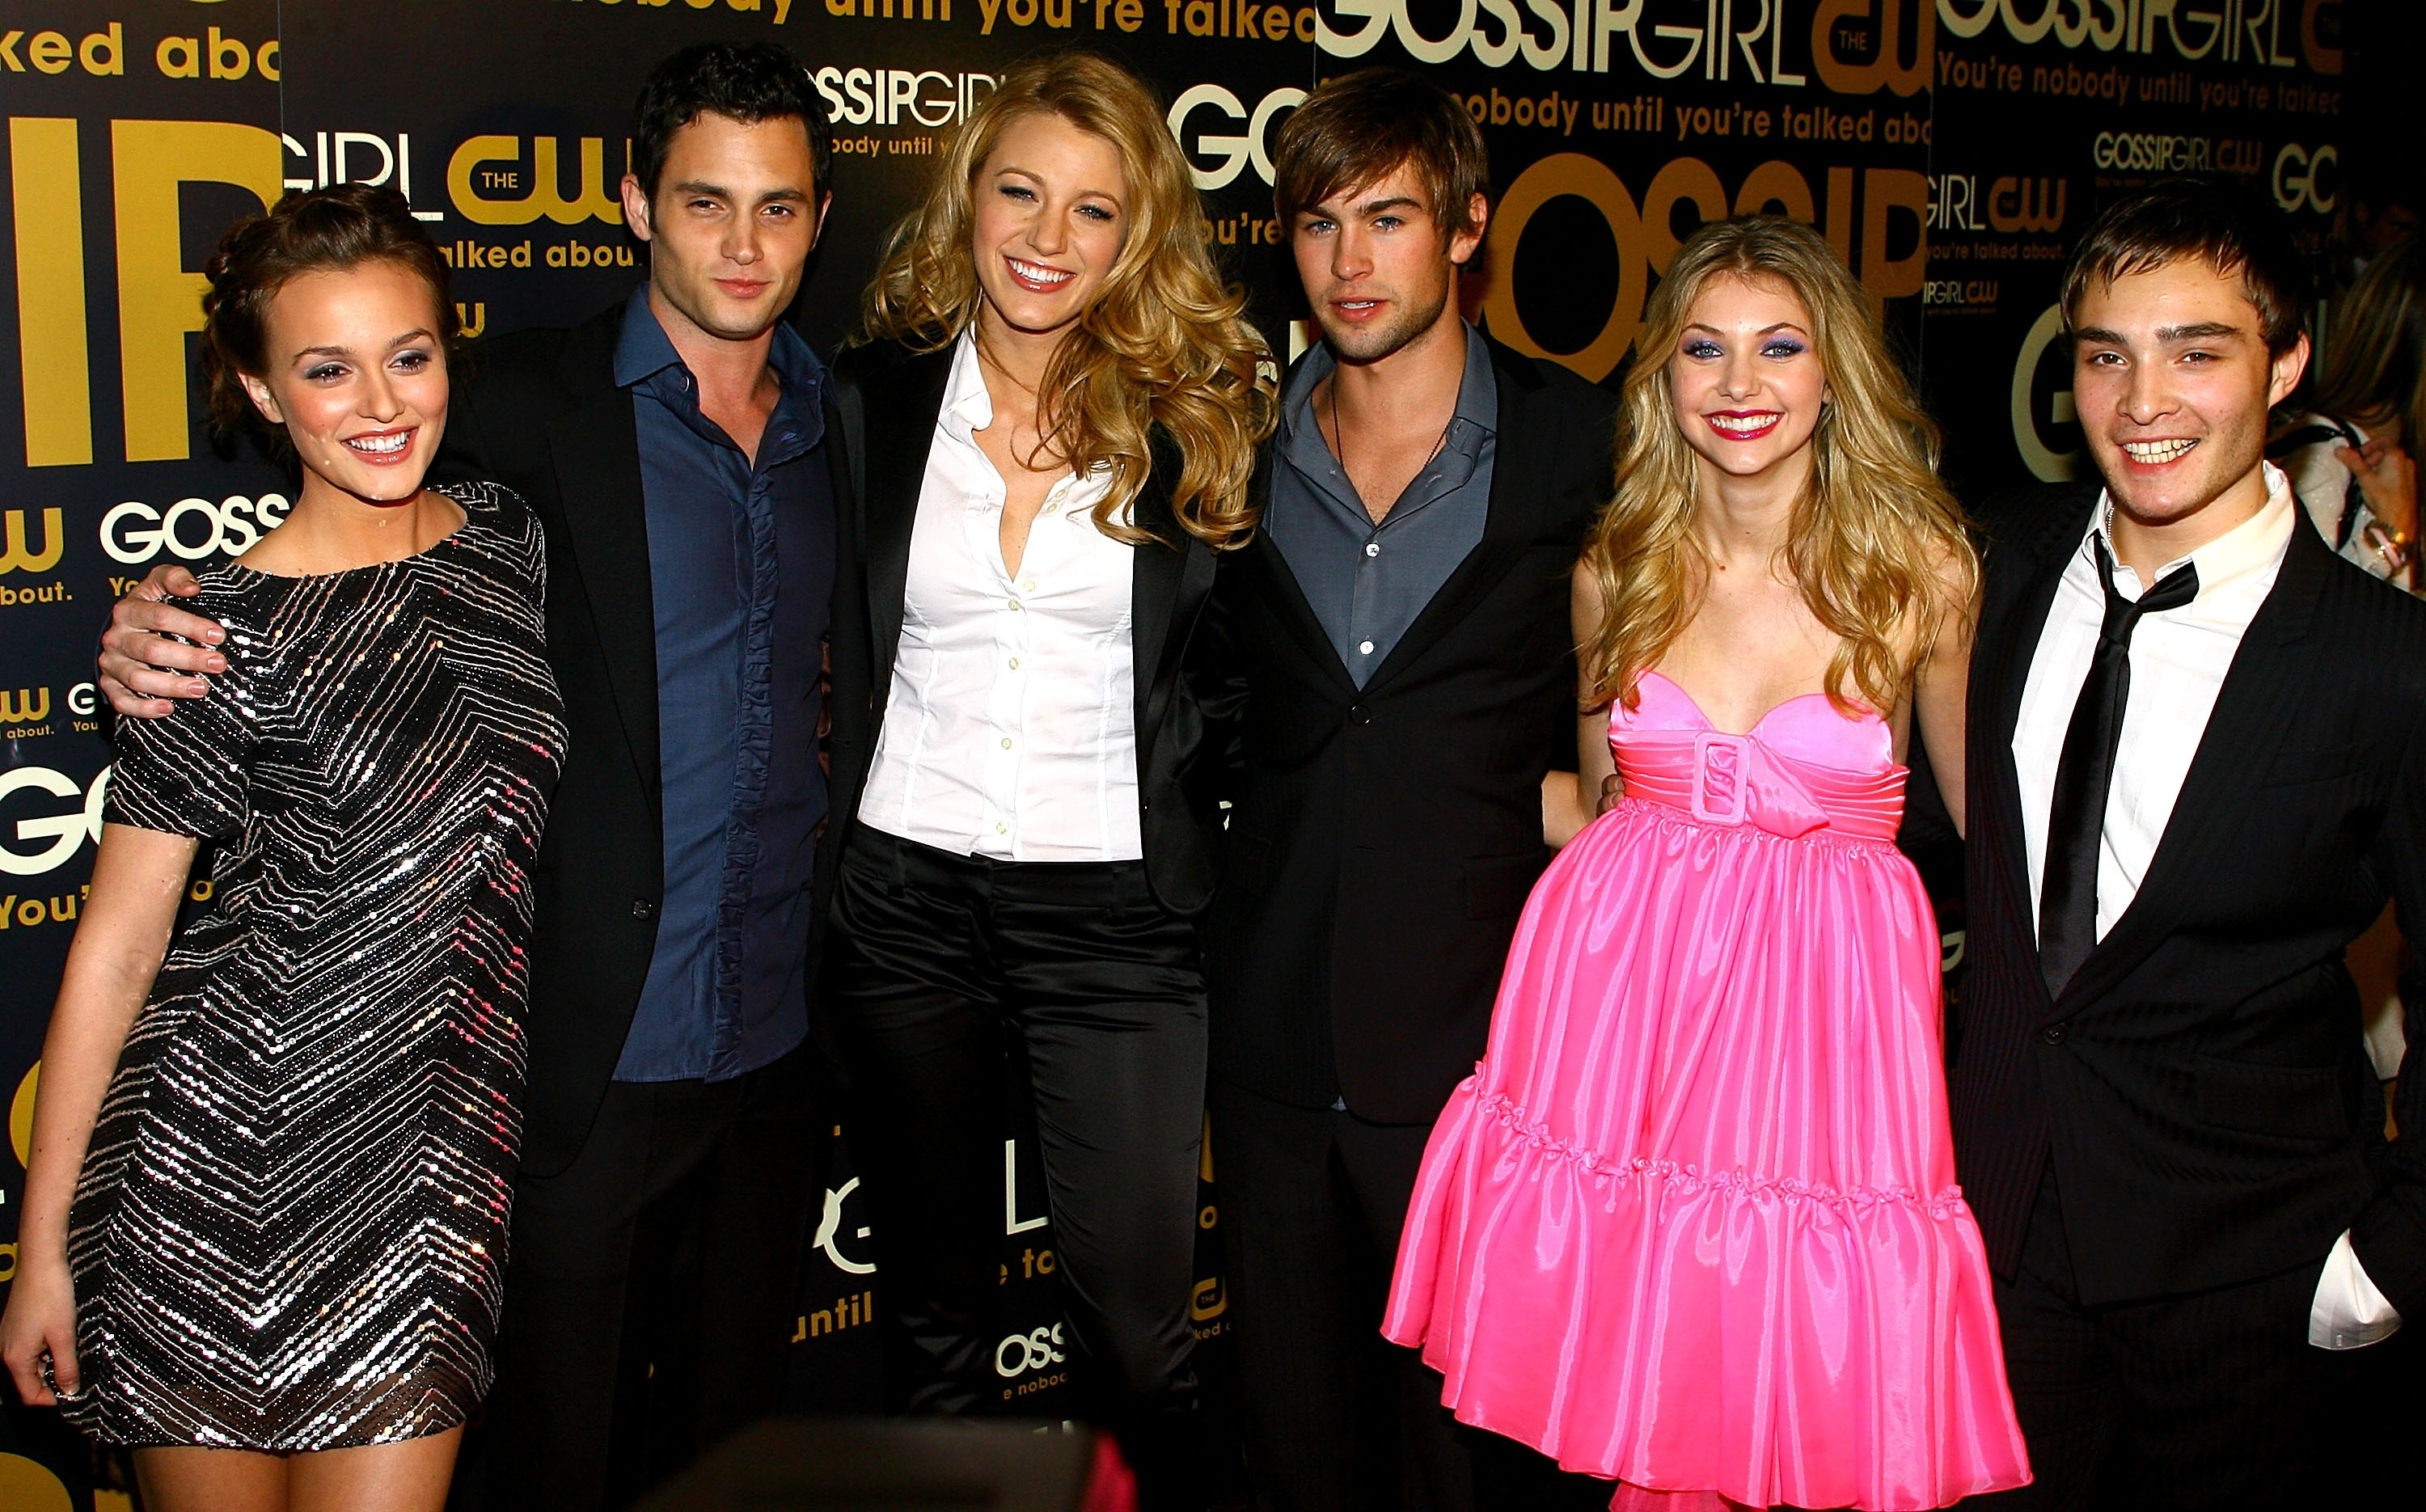 Dating Gossip Girl Cast